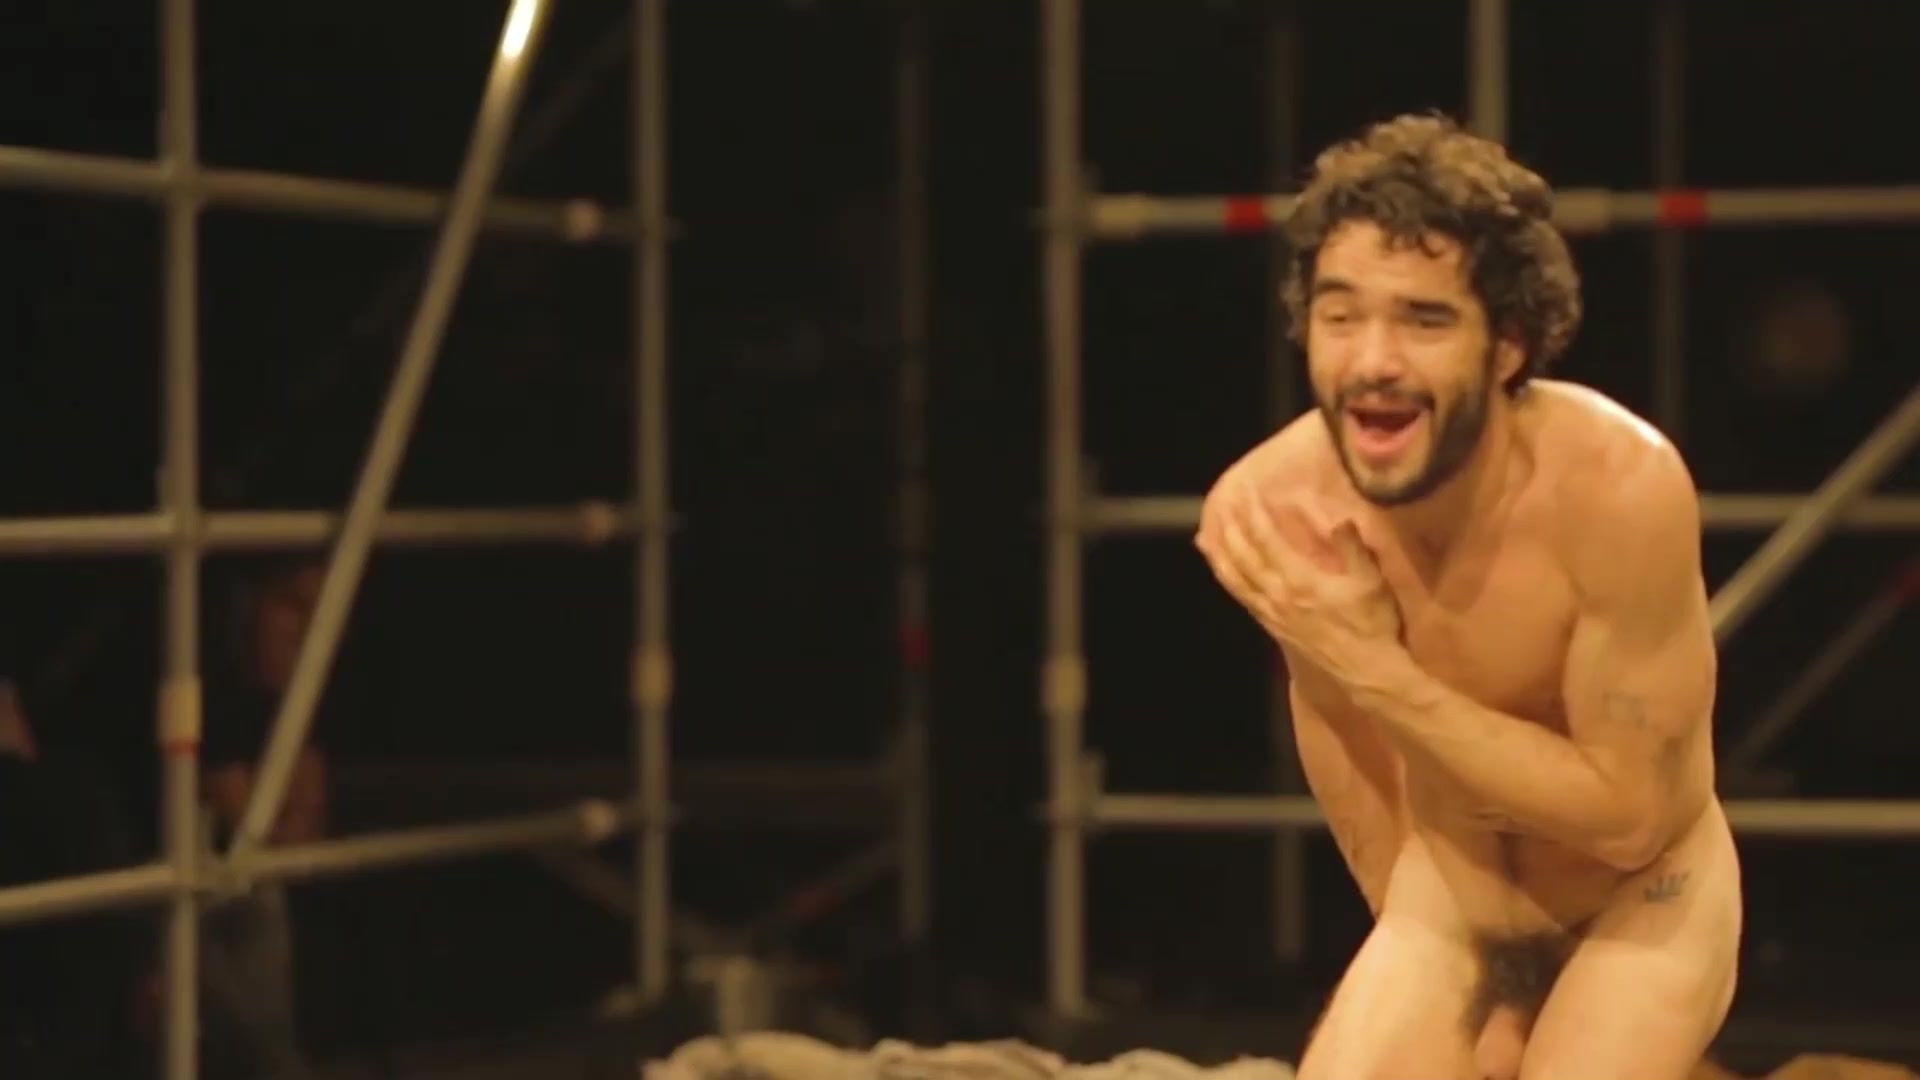 Caio Blat Full Frontal in a Stage Play